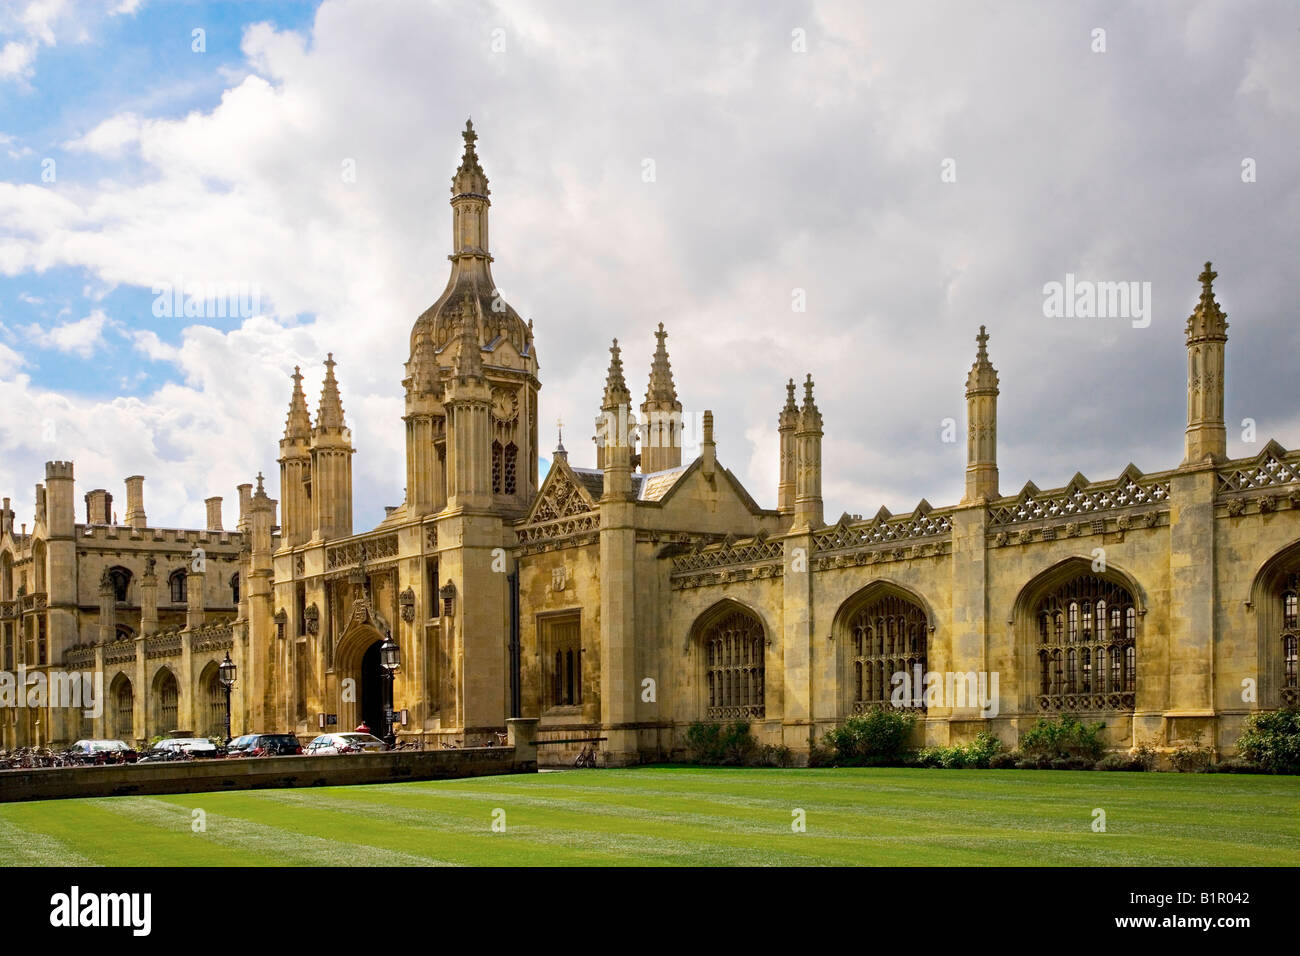 Front facade and Porter's Lodge of King's College, Cambridge University, England, UK - Stock Image